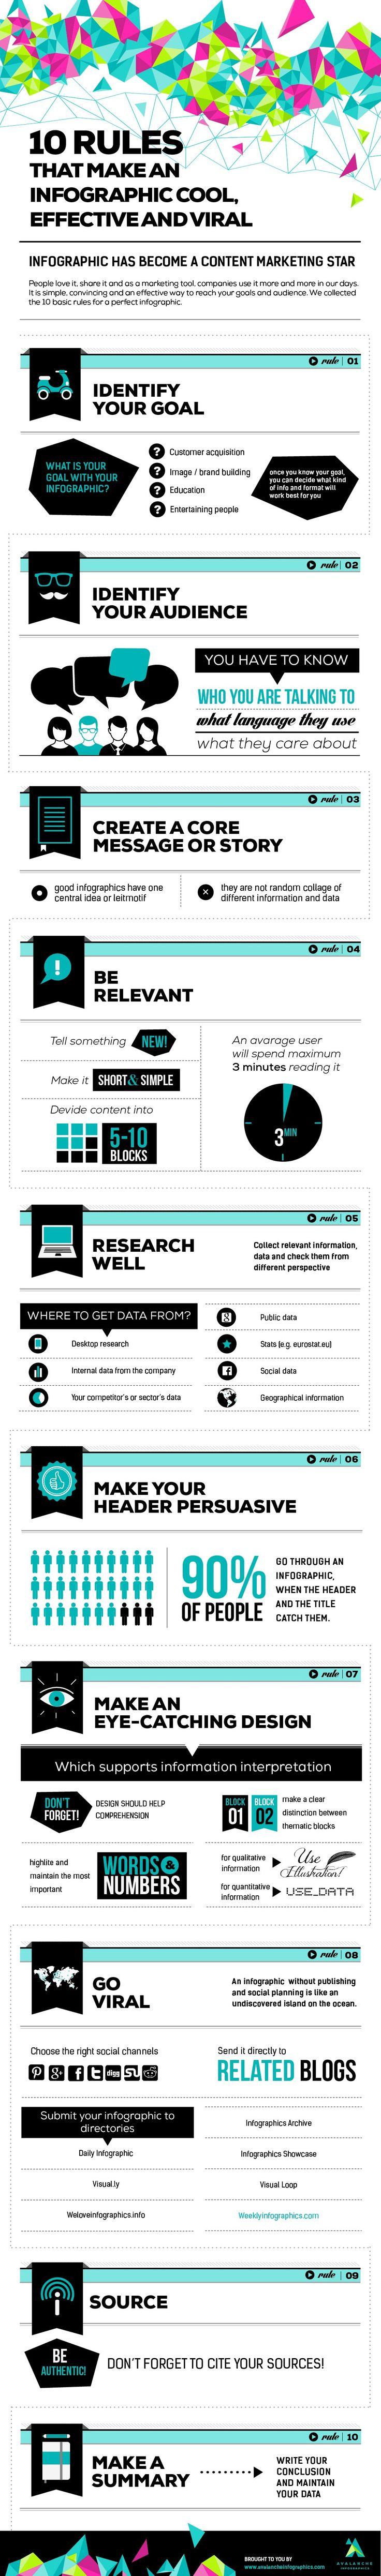 10 Rules That Make Angraphic Effective (infographic) Via Makeuseof